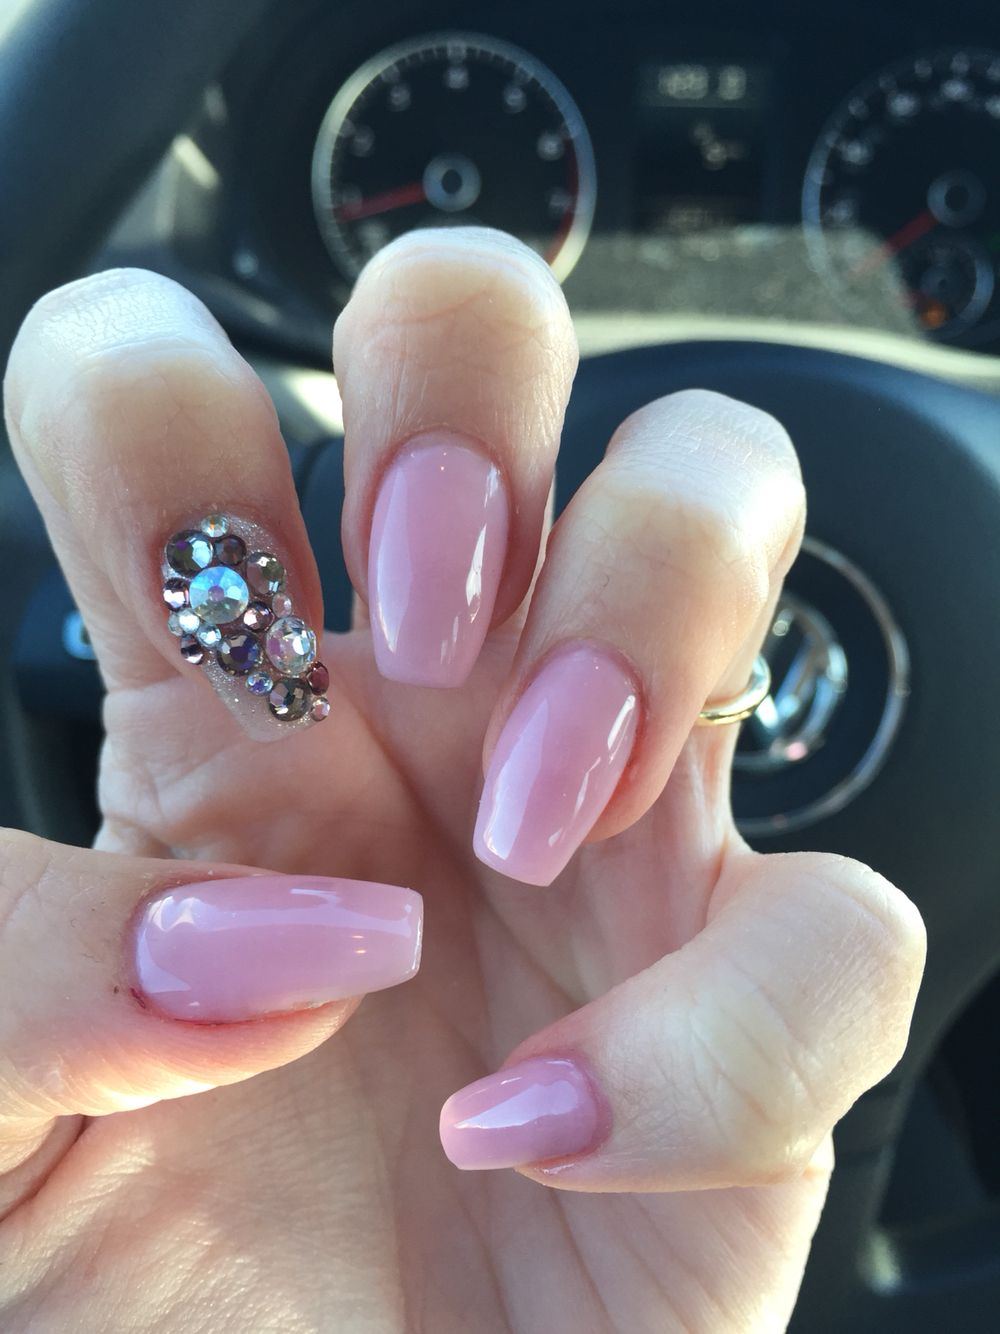 Nails by Lauren ballerina shaped nails or coffin shaped nails with ...